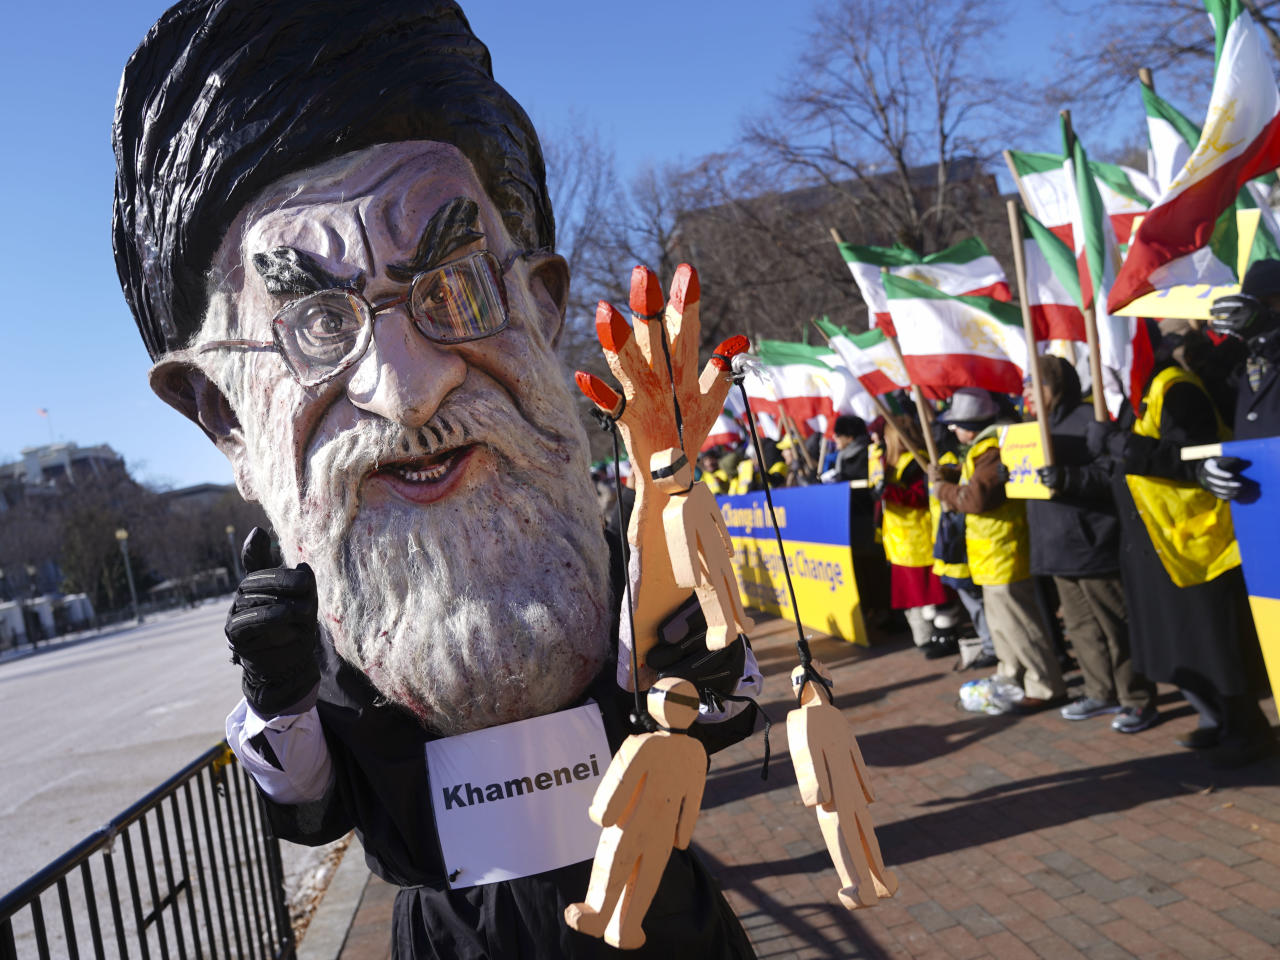 <p>A demonstrator dressed as the Iranian Supreme Leader Ayatollah Ali Khamenei participates a rally across from the White House in Washington, on Saturday, Jan. 6, 2018, in solidarity with anti-government demonstrators in Iran. (Photo: Pablo Martinez Monsivais/AP) </p>